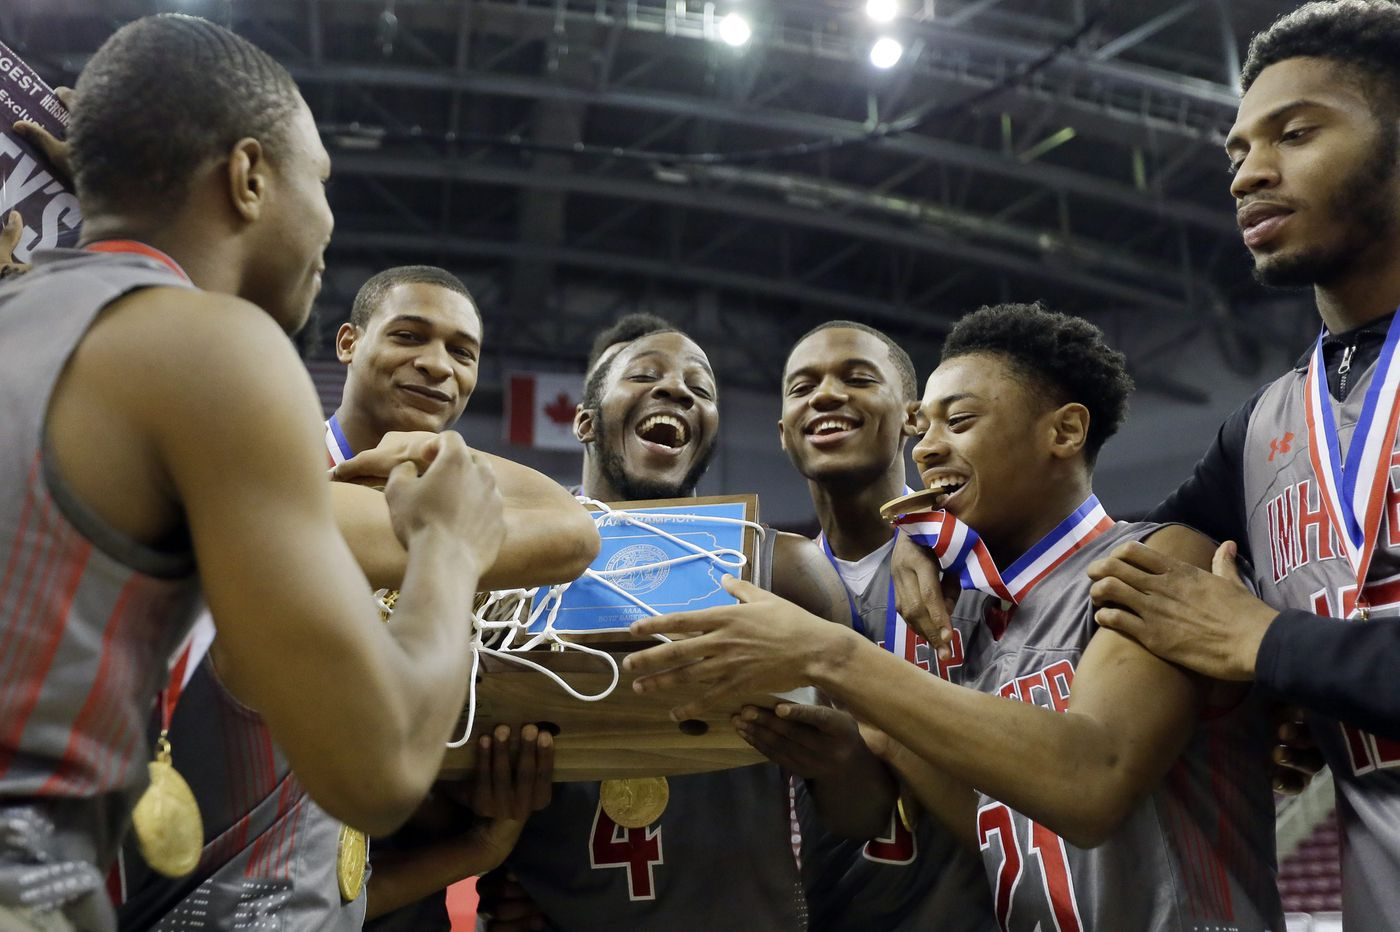 PIAA makes transfers ineligible for first postseason with new team